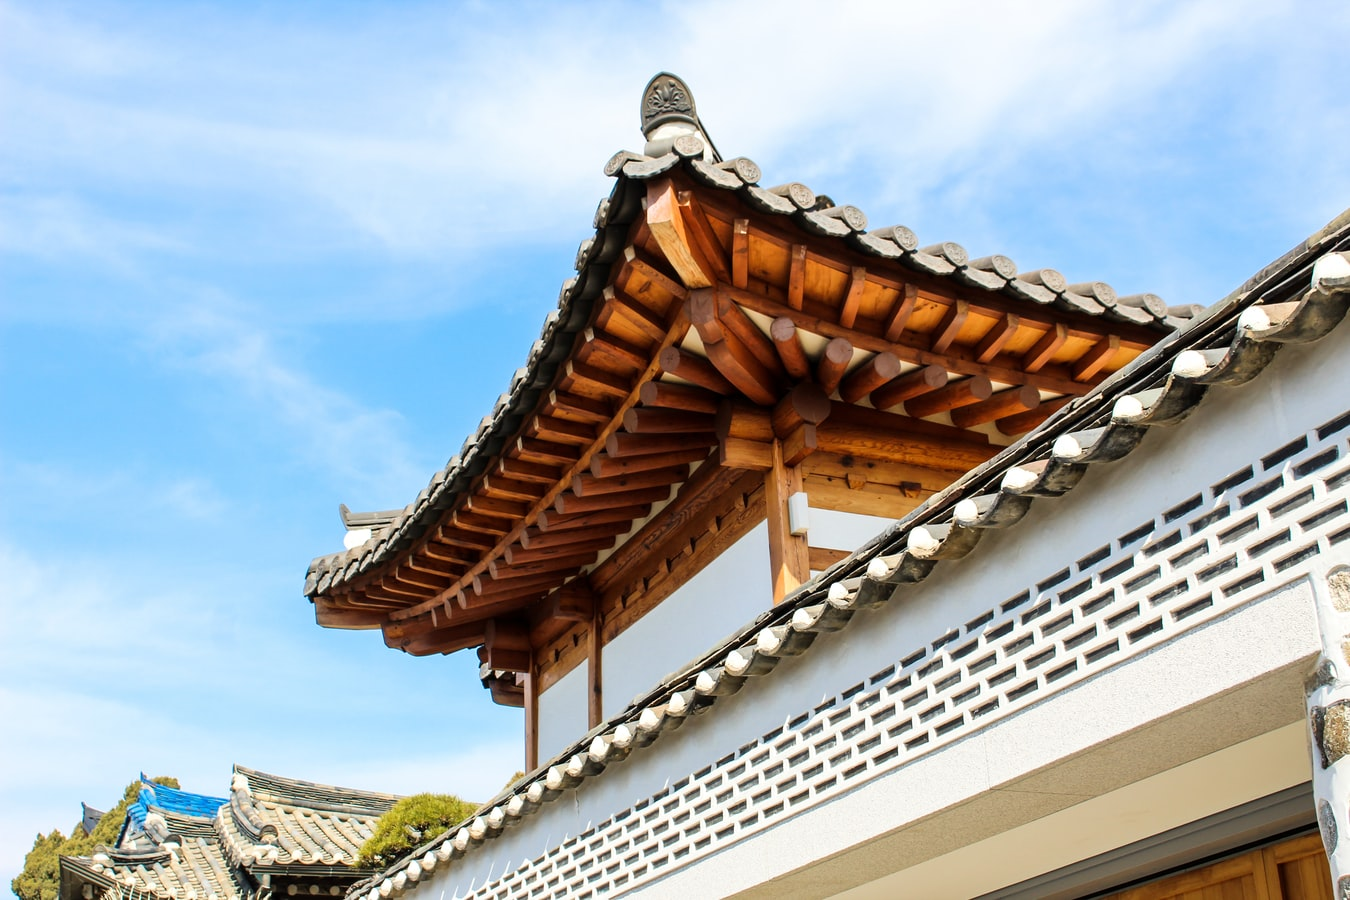 Teachers could have a chance to live in Korea's beautiful houses while teaching